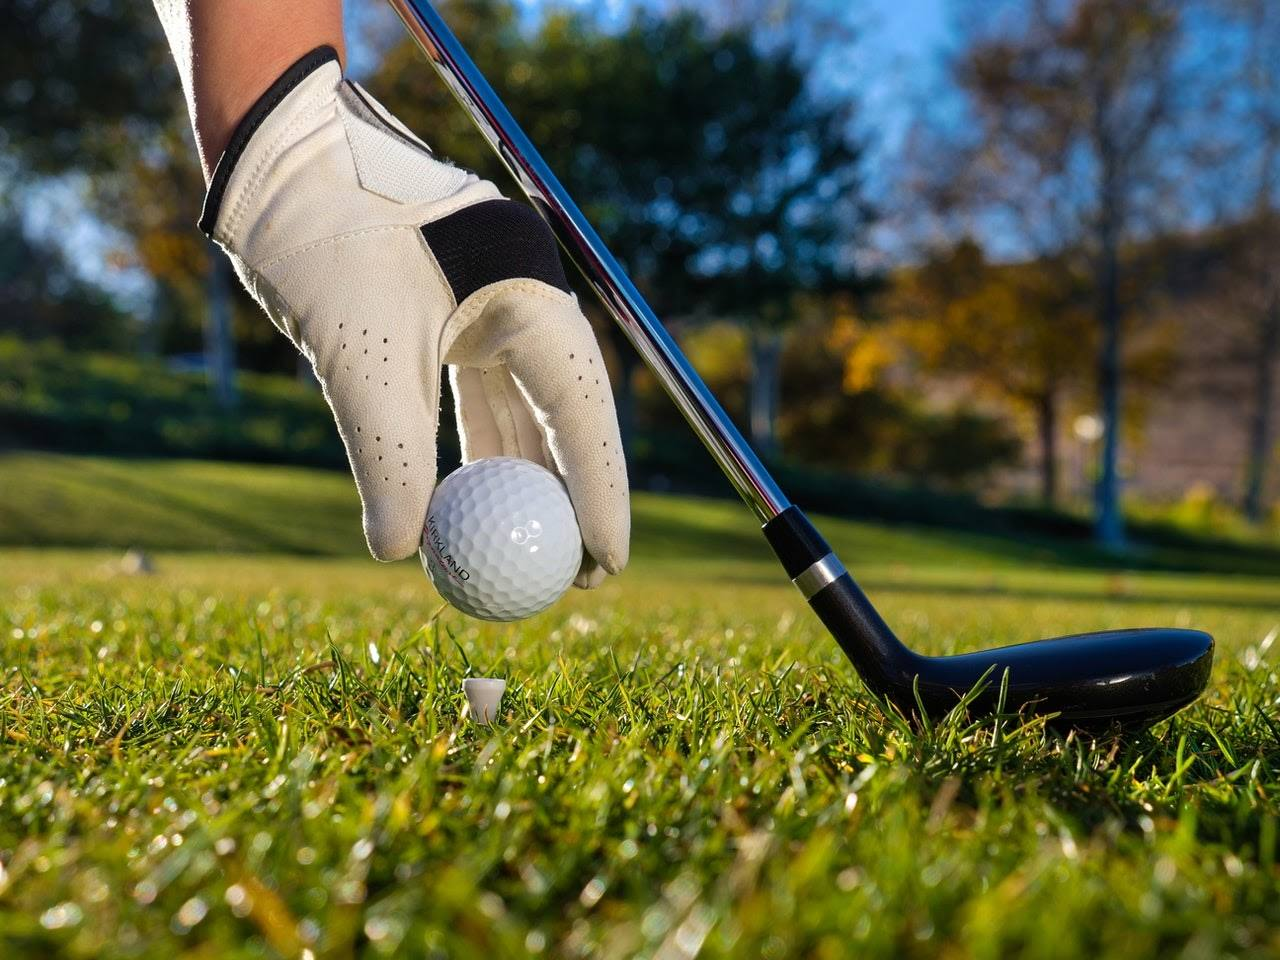 Gloved hand placing a golf ball on a tee.